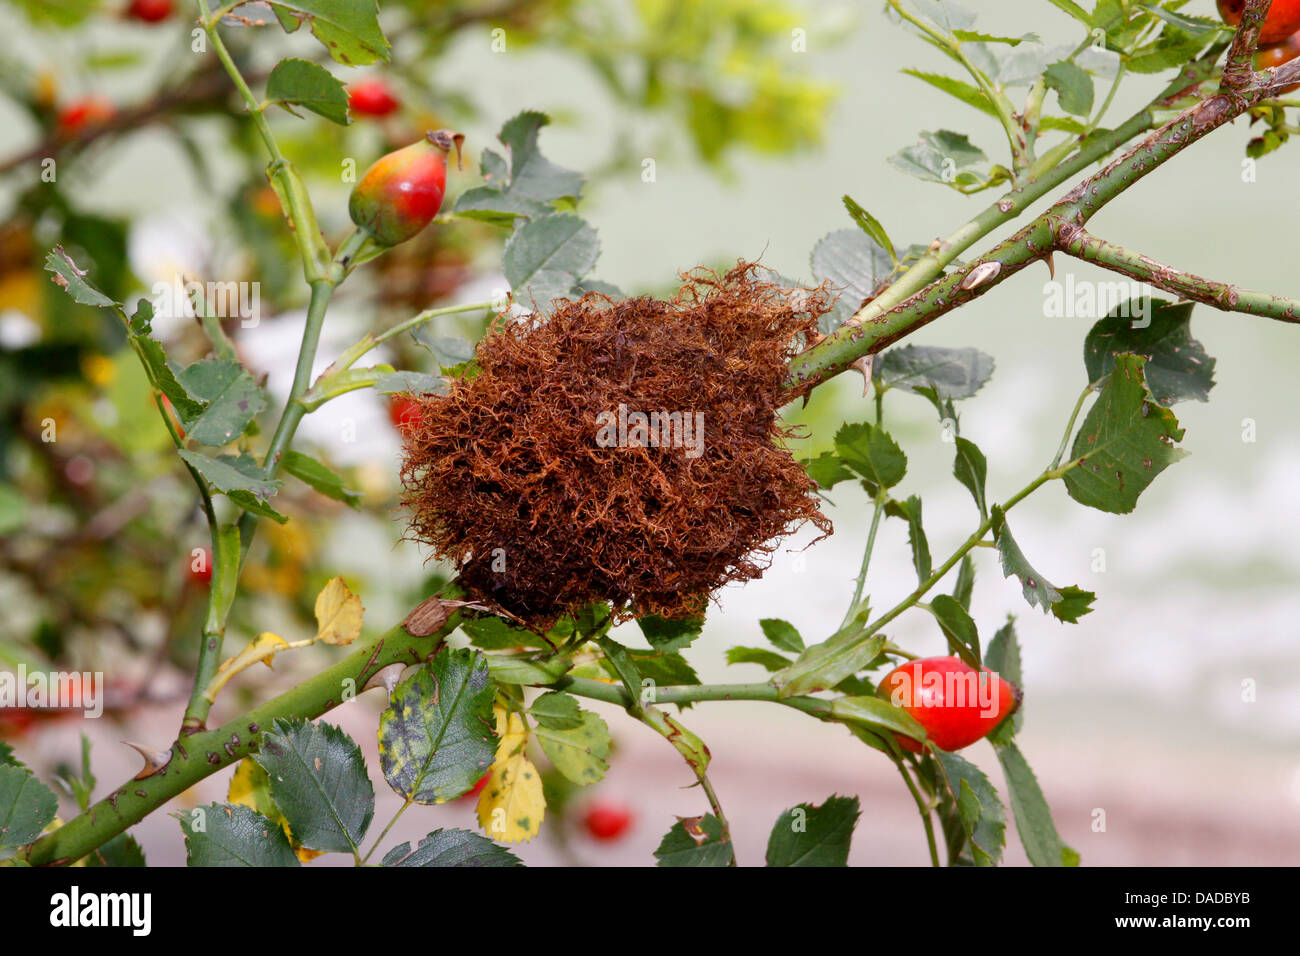 mossy rose gall wasp, bedeguar gall wasp (Diplolepis rosae), at a wild rose, Germany - Stock Image